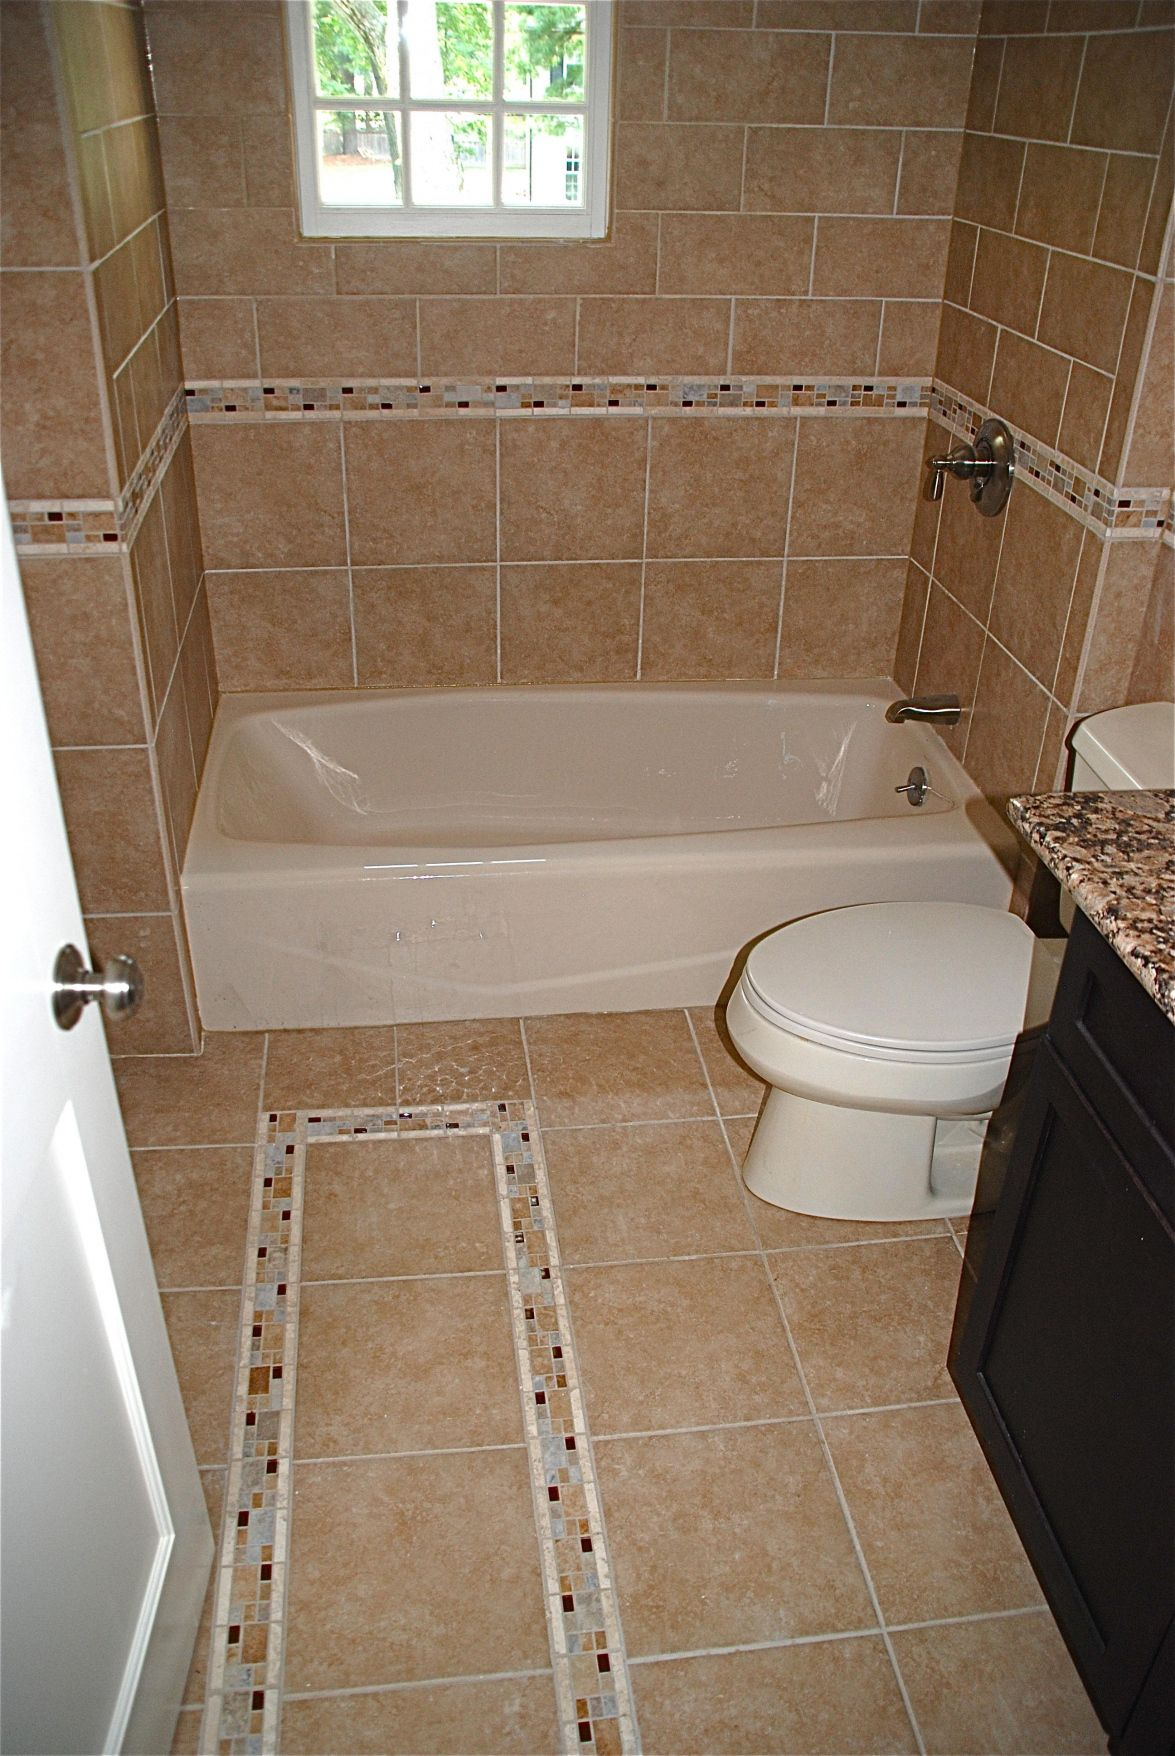 Best Of Small Tiles Home Depot Check more at http://www.jnnsysy.com ...